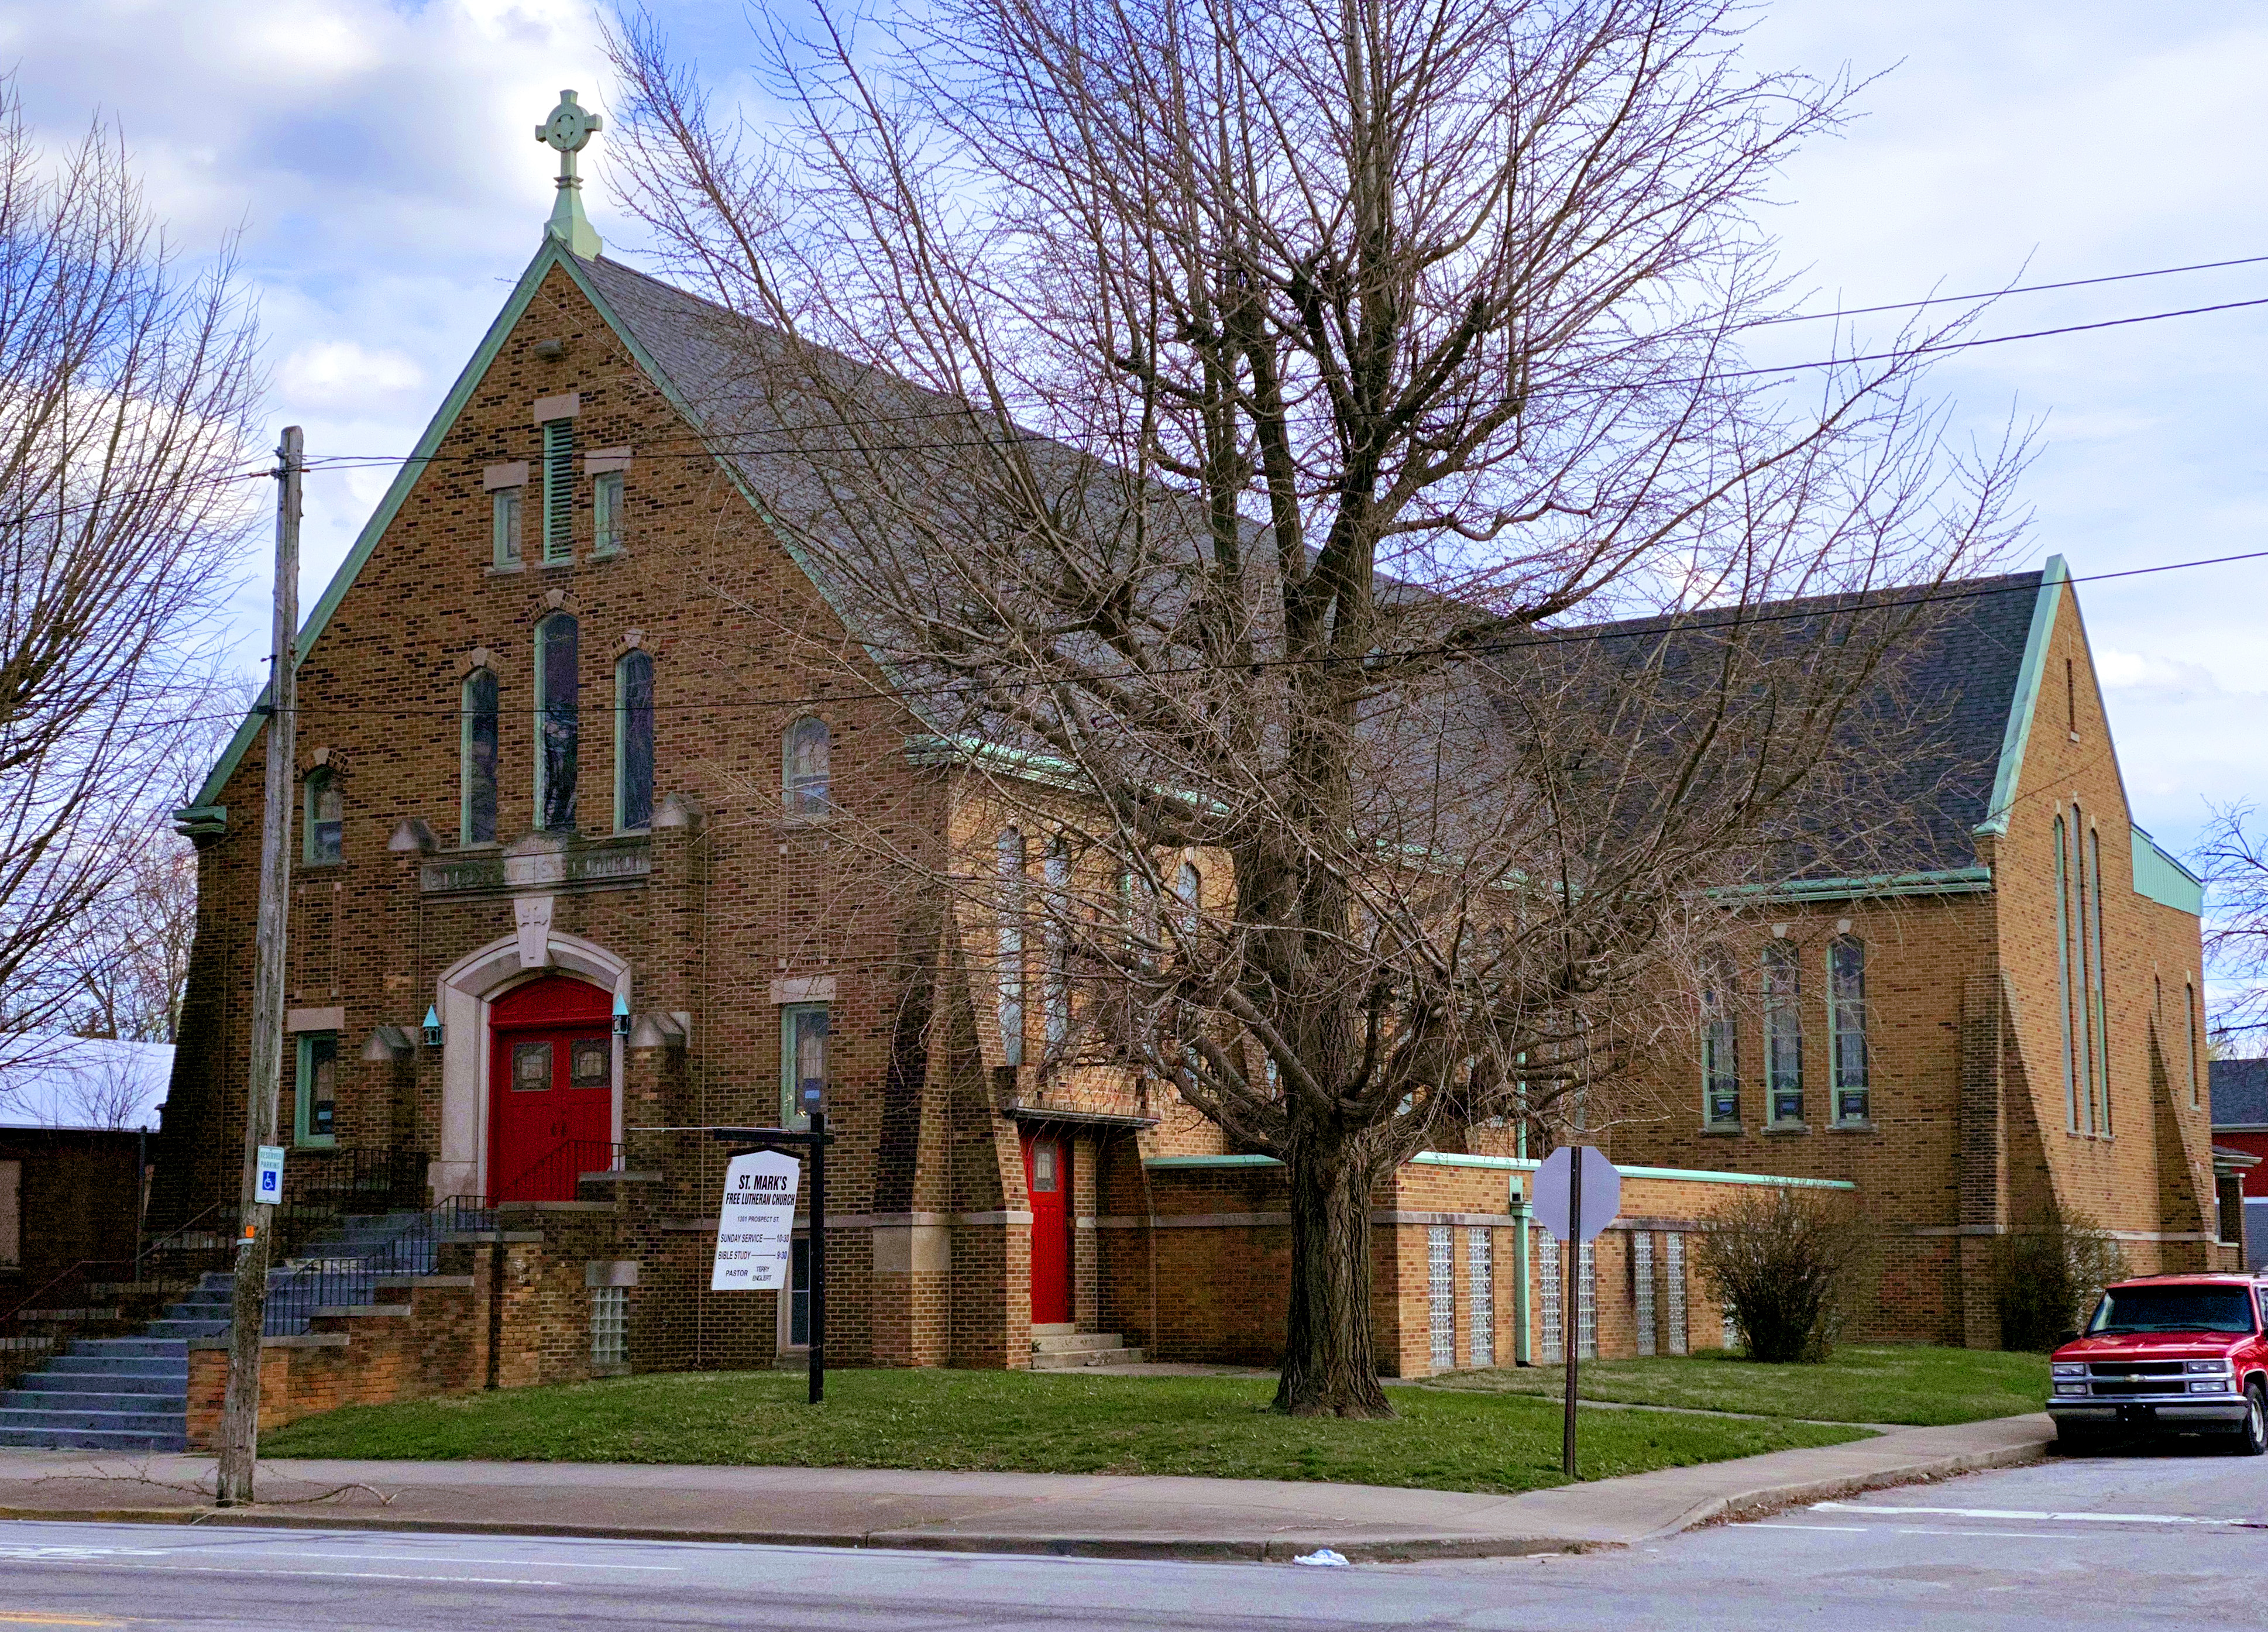 St. Mark's Lutheran church from Prospect Street in March 2020.